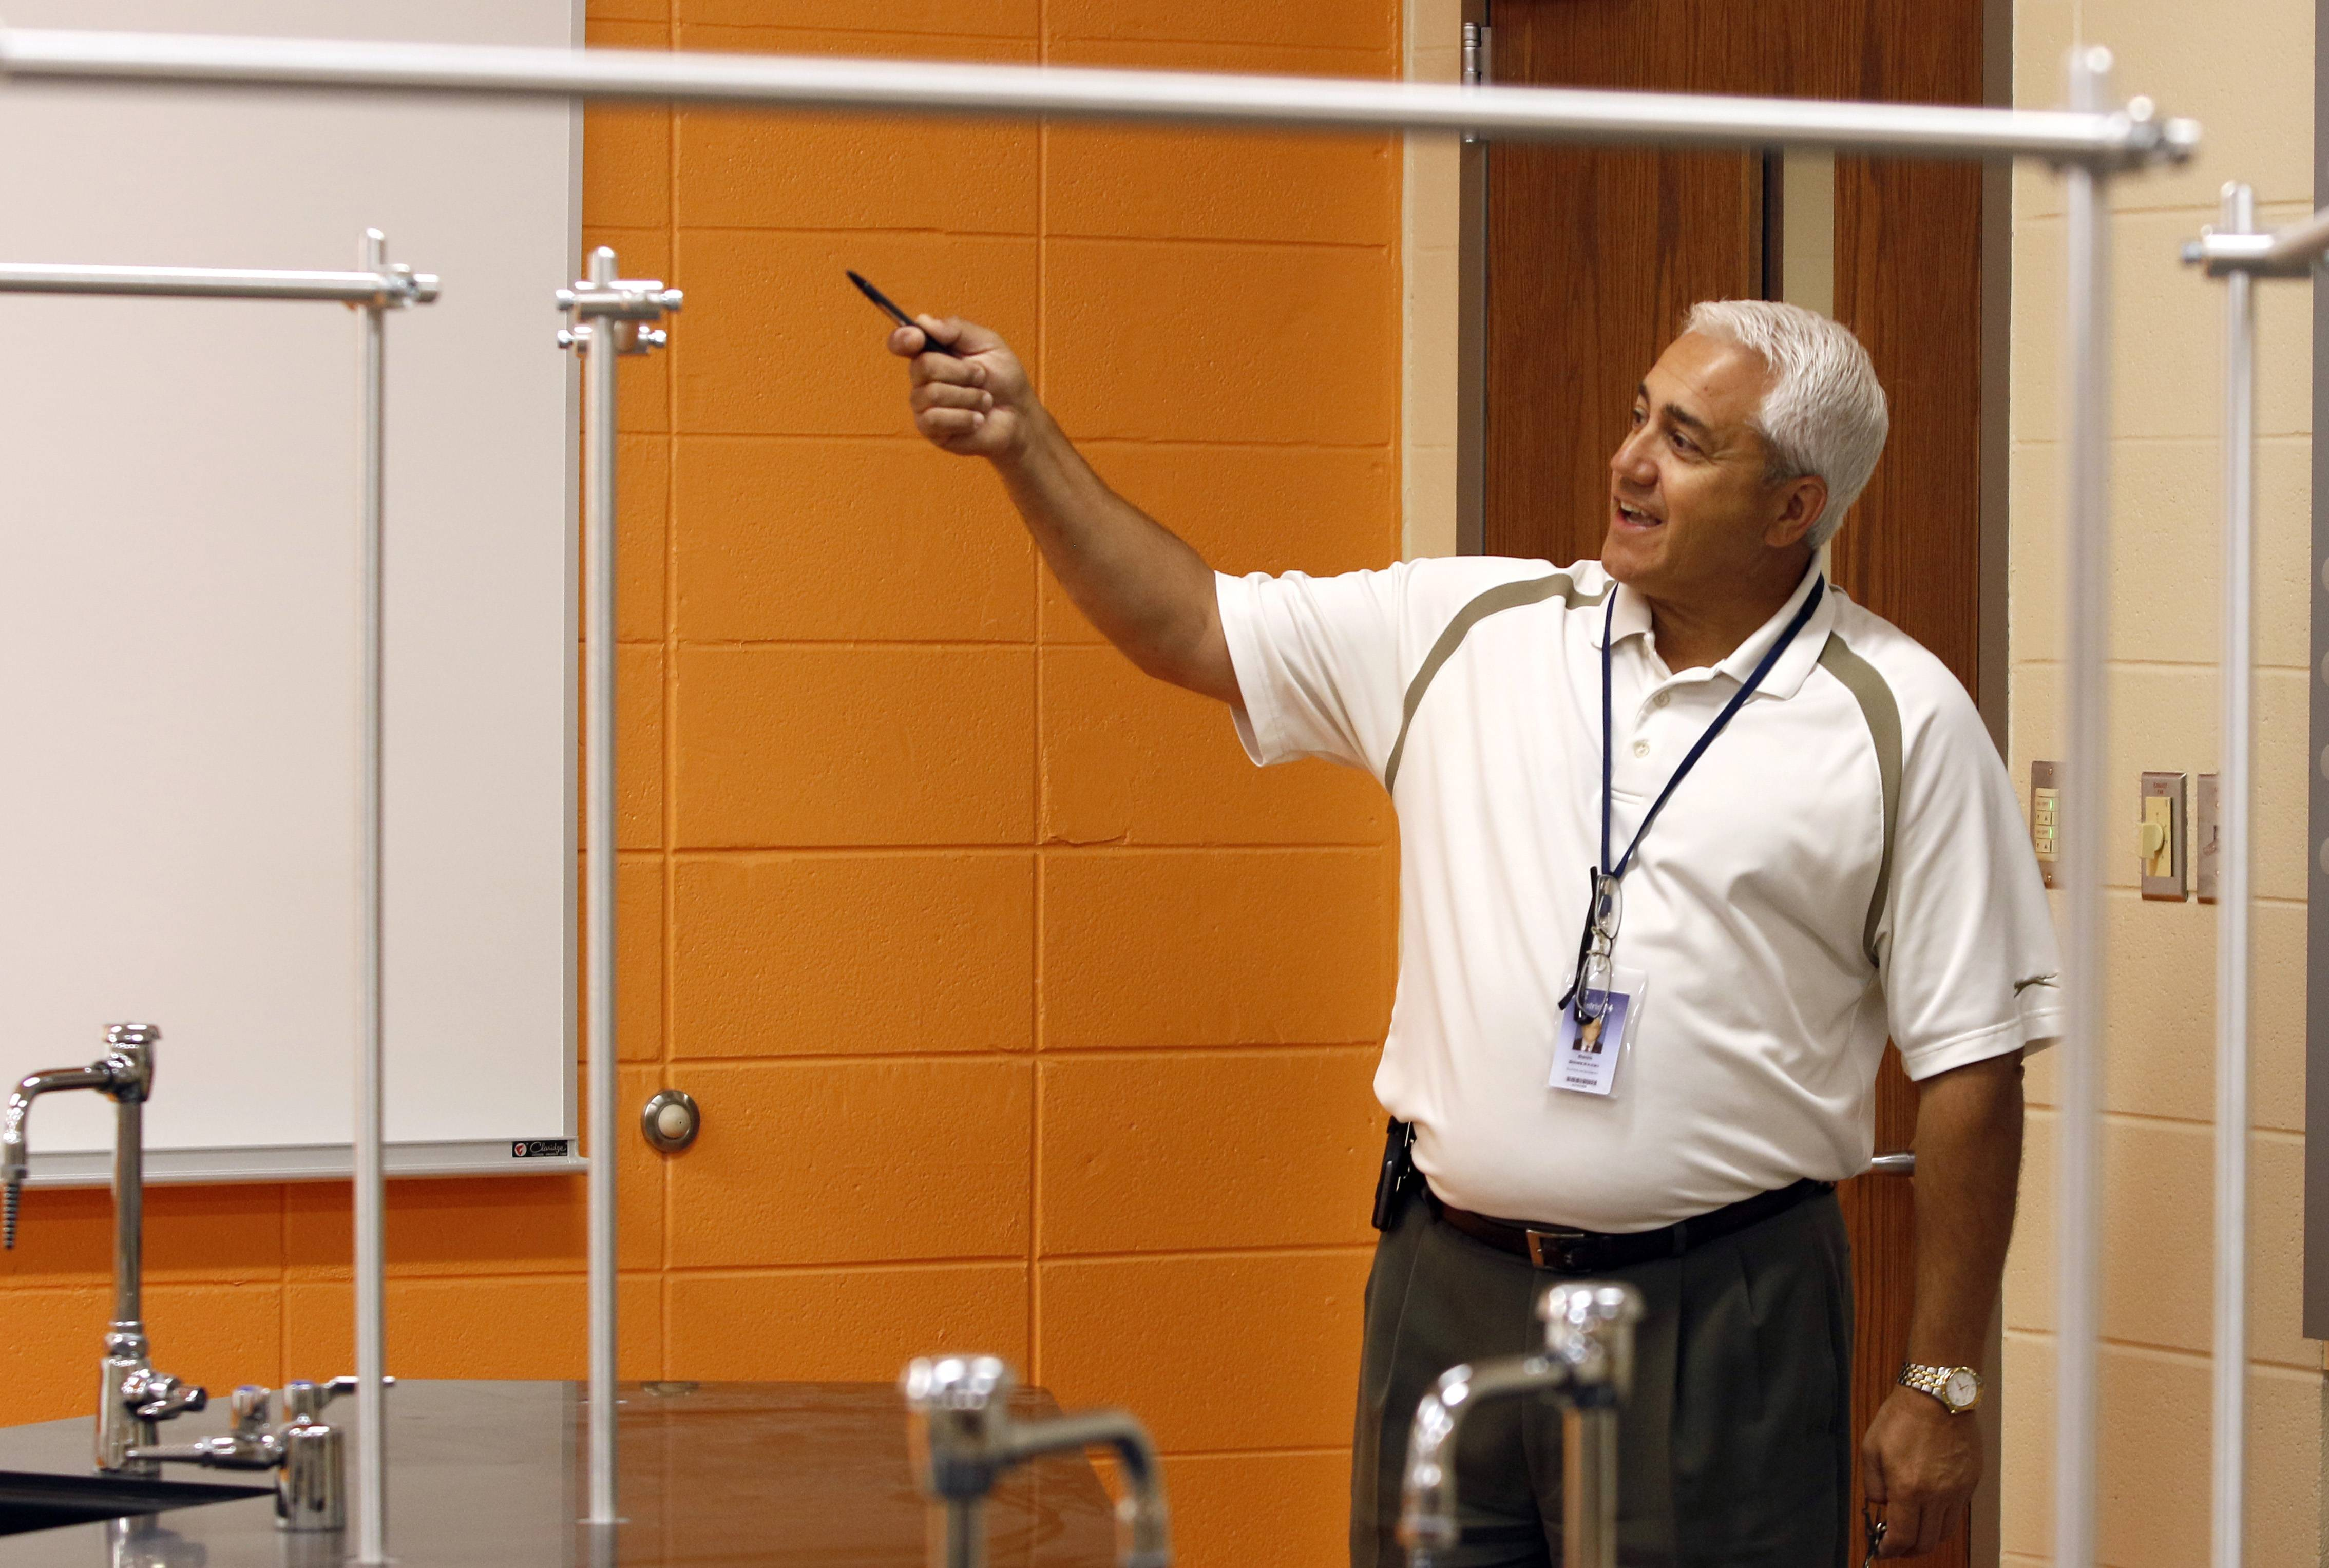 West Chicago Community High School Superintendent Doug Domeracki showed off new chemistry classrooms that opened this school year.